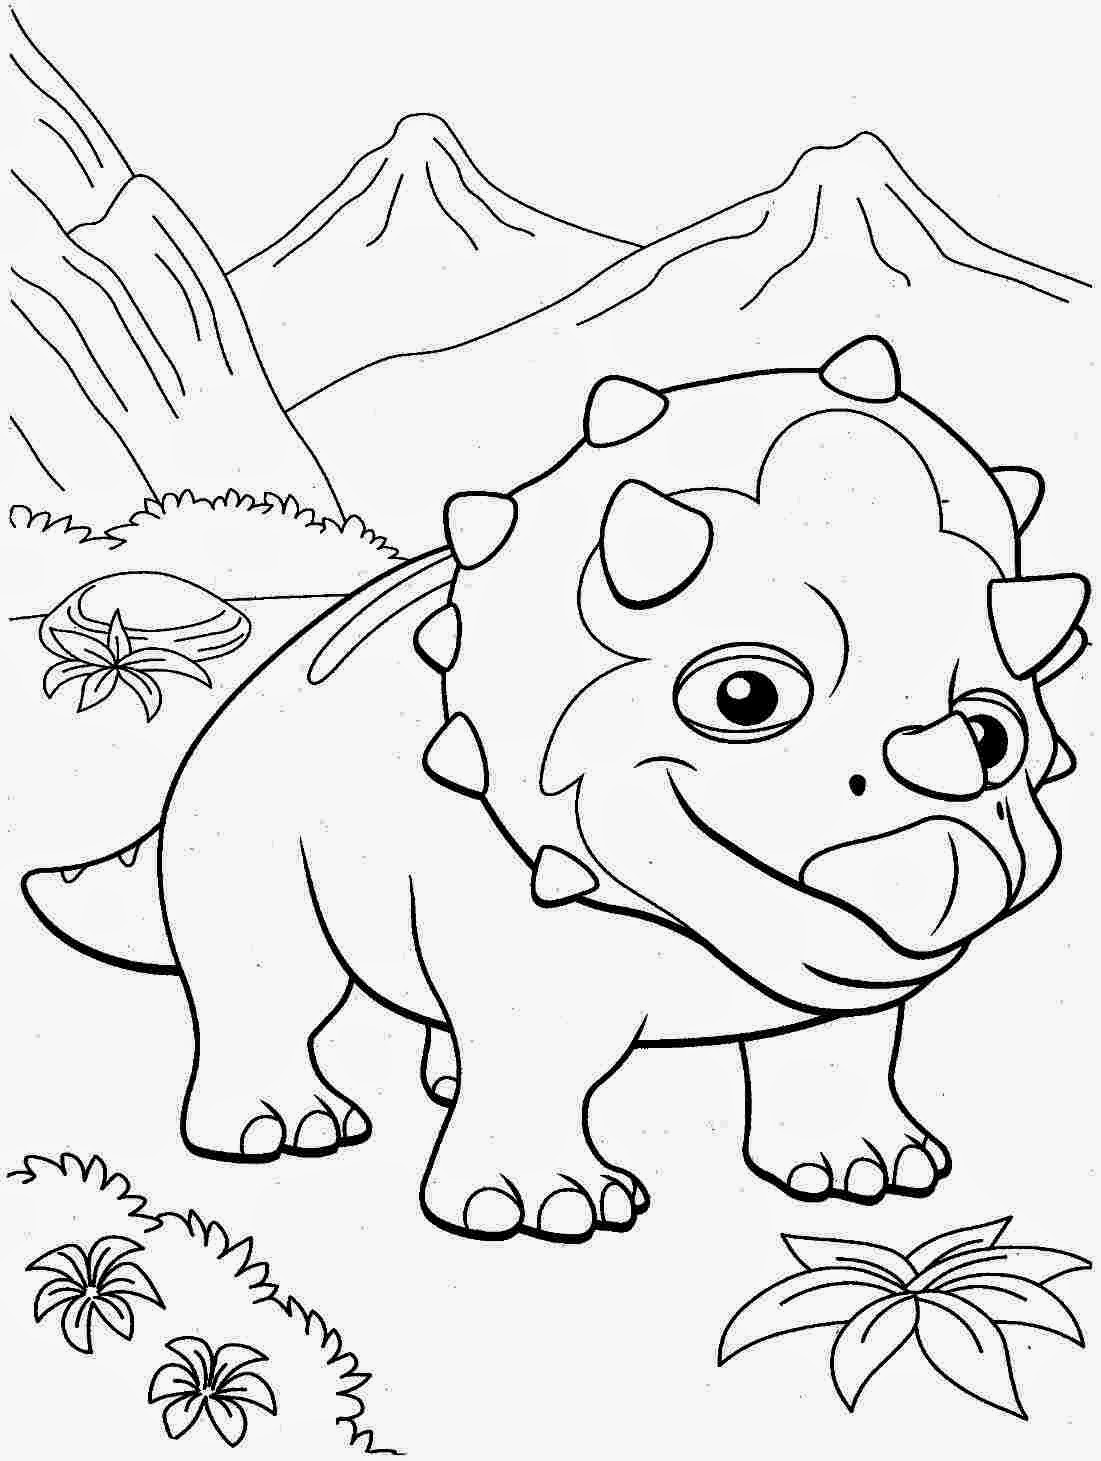 free printable coloring pages of dinosaurs coloring pages dinosaur free printable coloring pages dinosaurs of coloring free pages printable